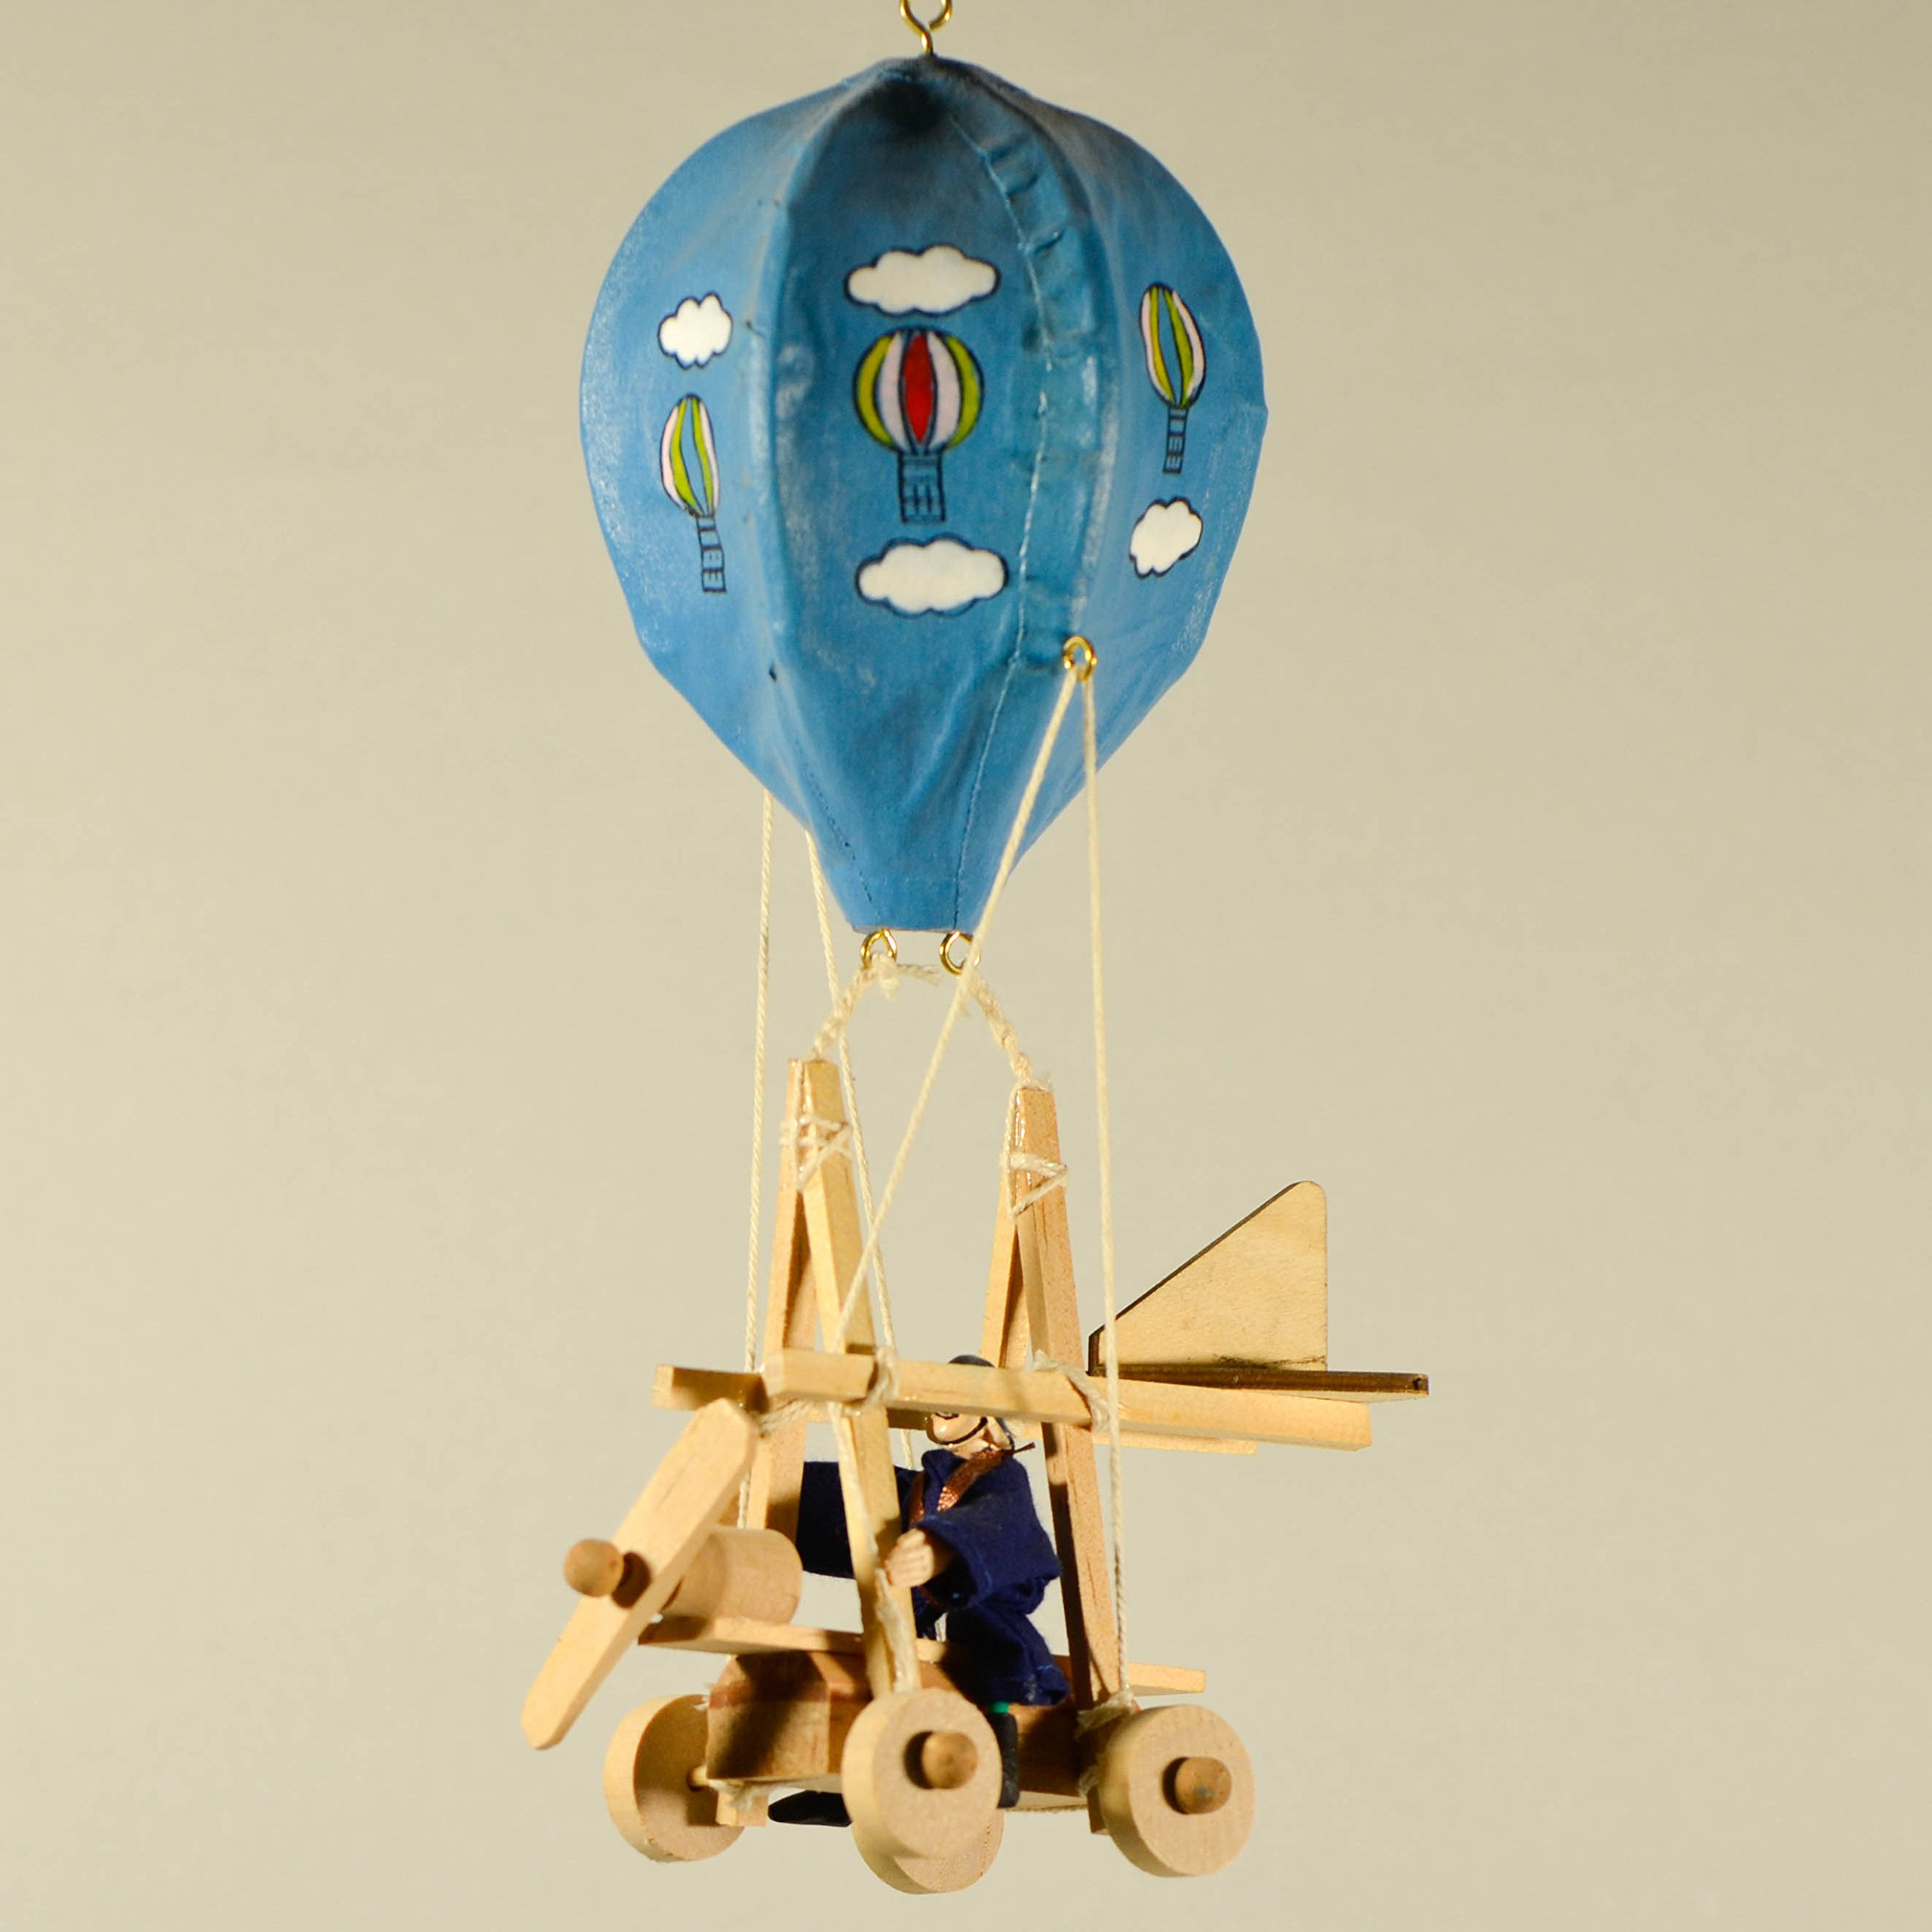 Wooden Hot Air Balloon Mobile with Painted Clouds Nursery Decor Wooden Mobile Home Decor Kids Room